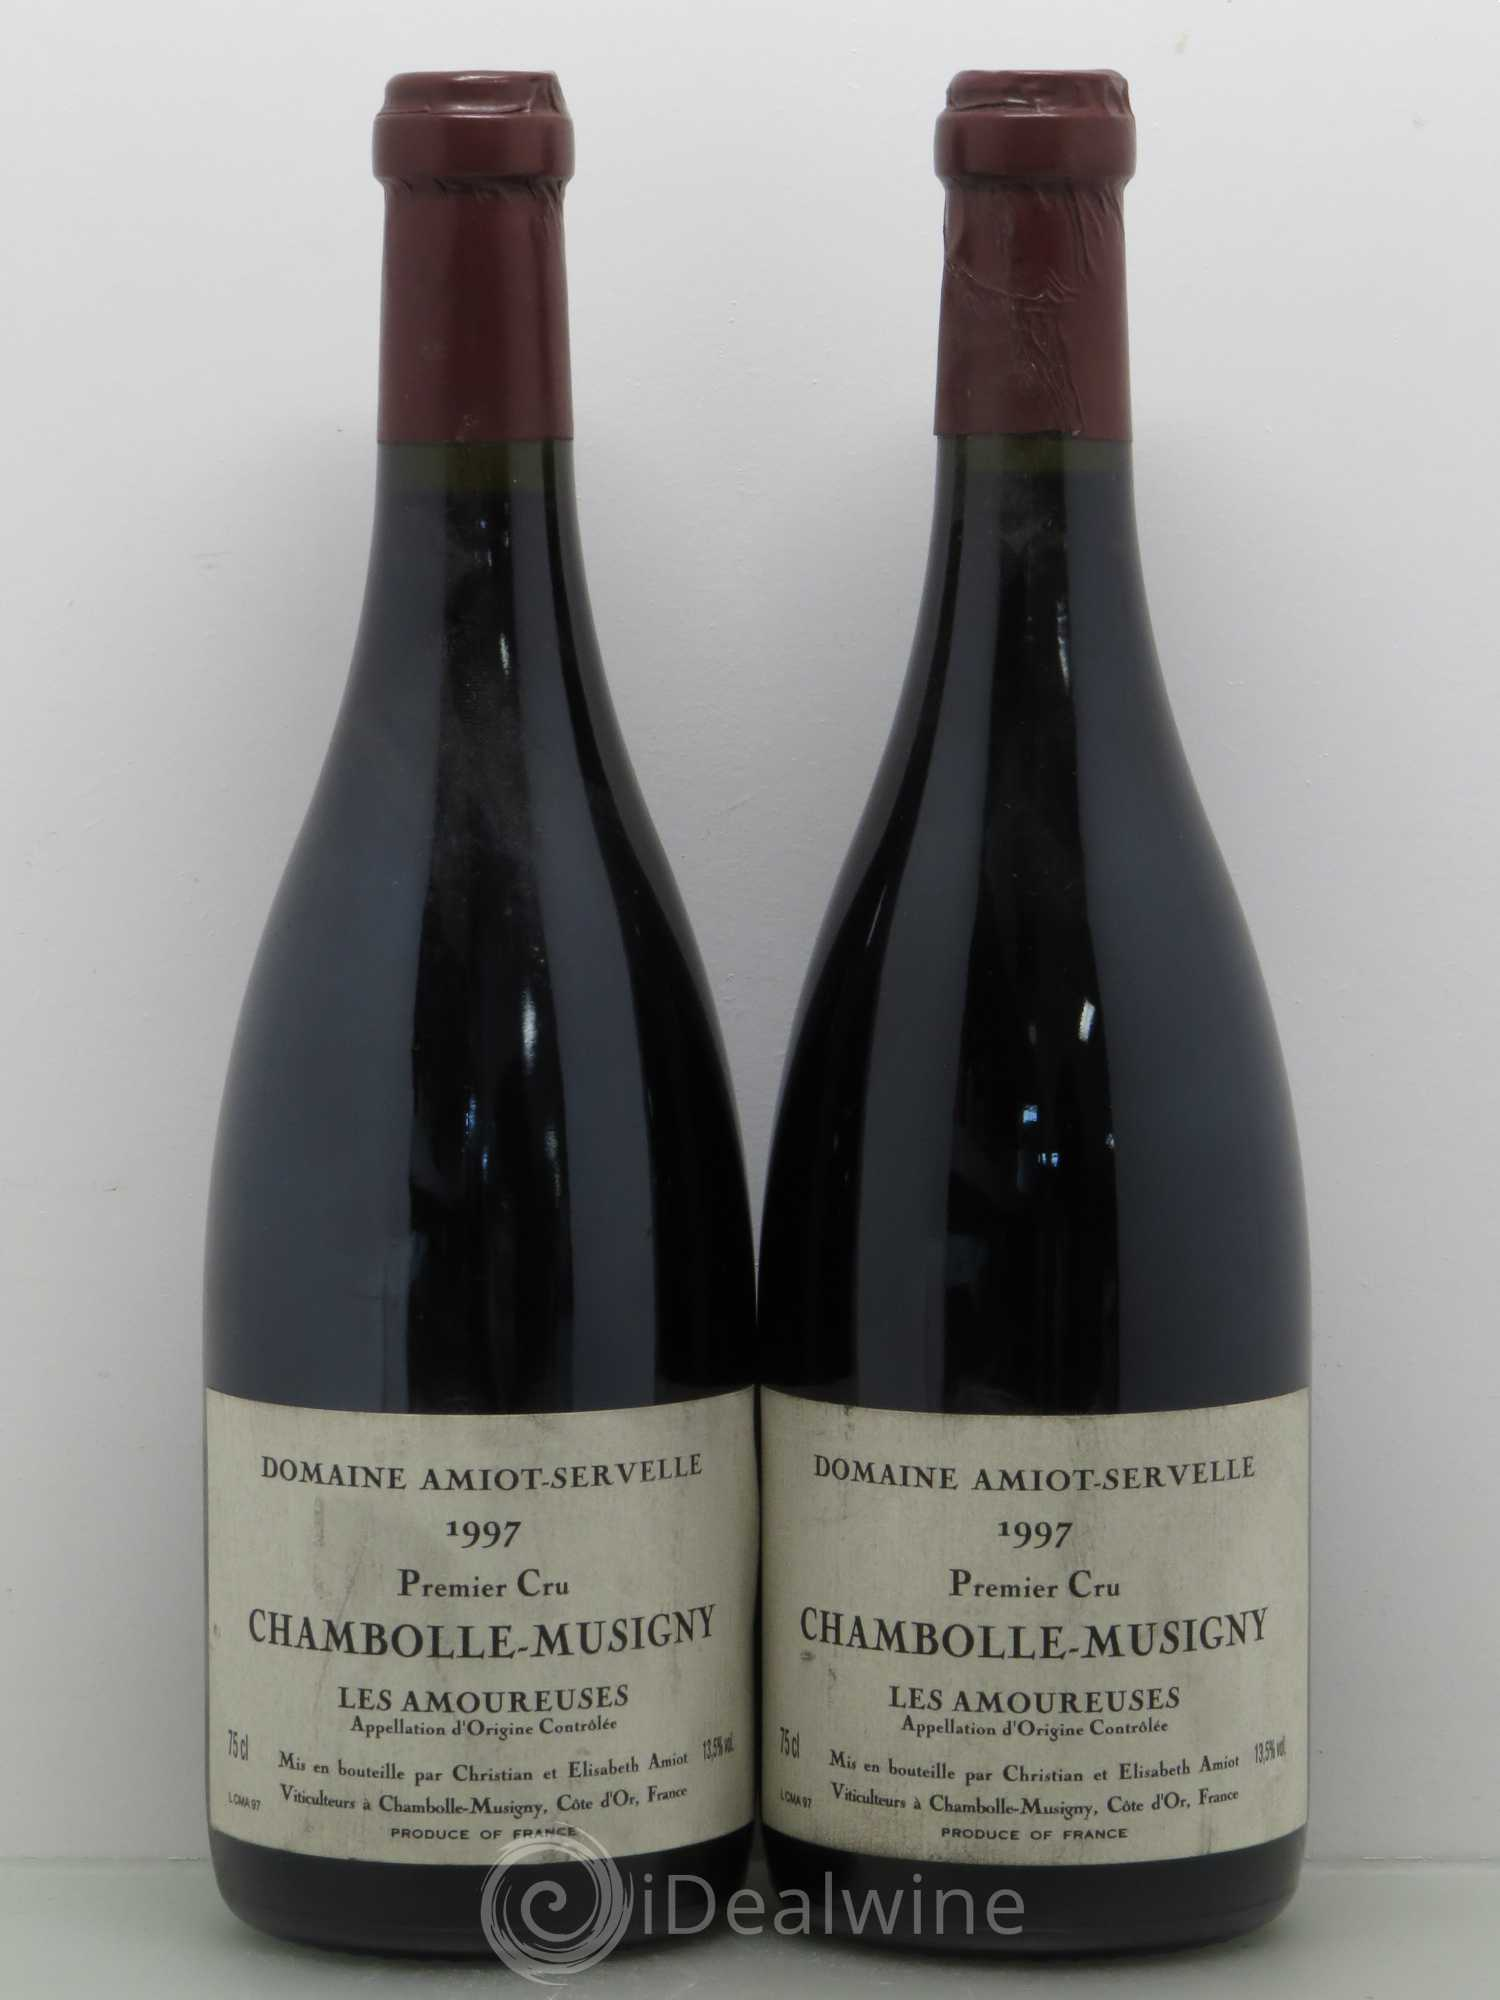 chambolle musigny chat sites Chambolle-musigny labouré roi red, vintage 1989 lot: 4072 composed of 1 bottle of burgundy wine, available in the sale (b2087007) of wines from 28/03/2018 14:00:00.